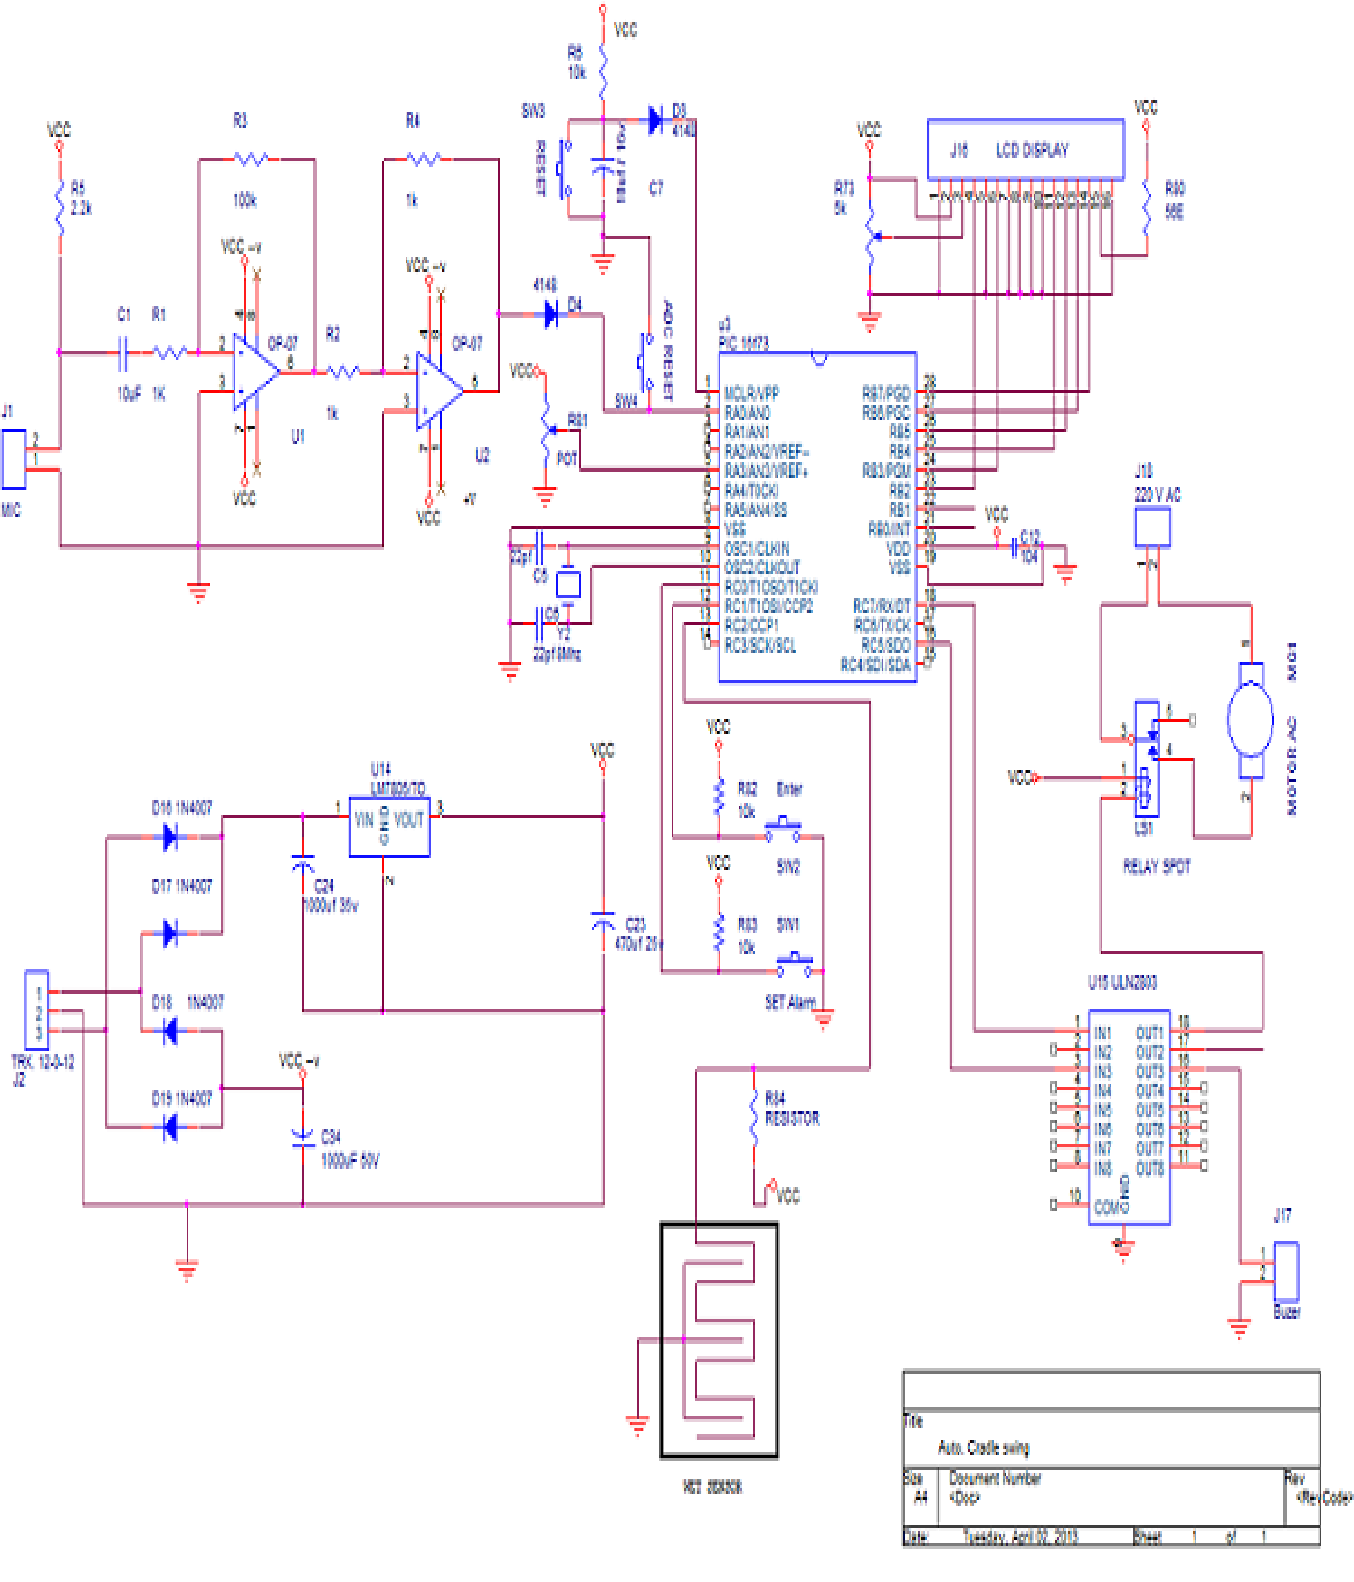 hight resolution of fig 6 circuit diagram